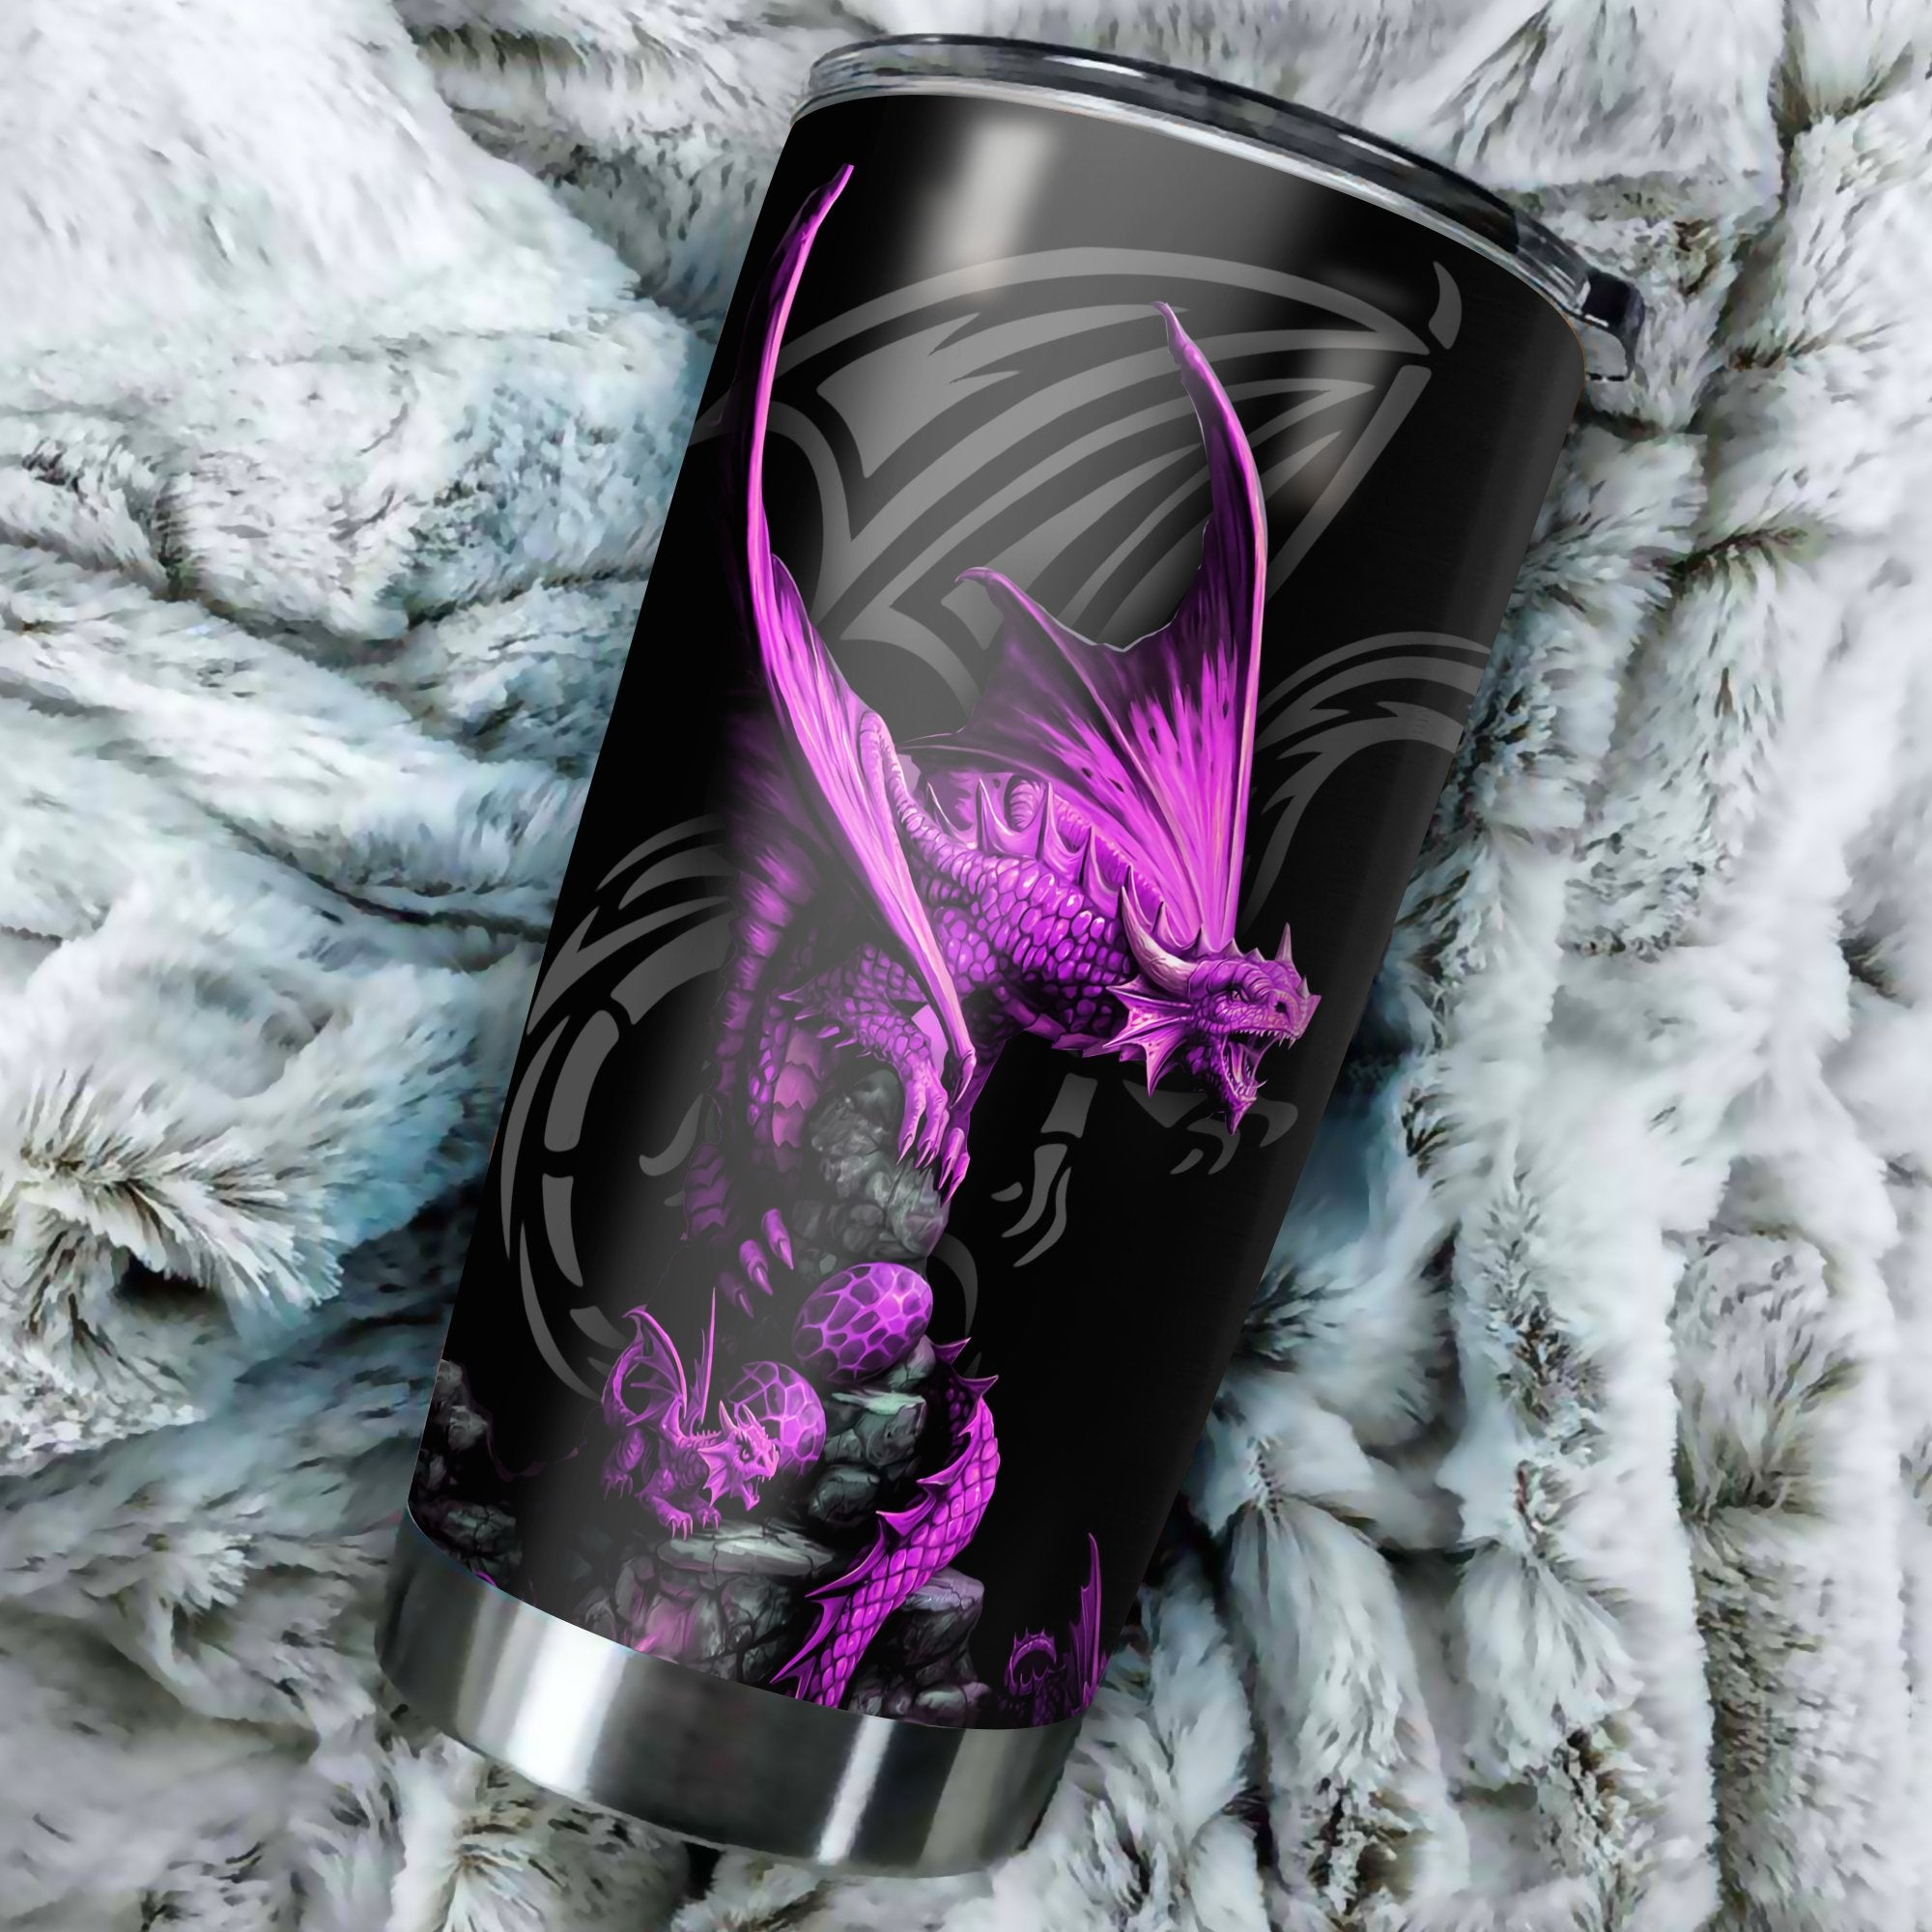 Dragon & Dungeon Tattoo Tumbler 20 Oz HAC020359-Tumbler-NM-Vibe Cosy™